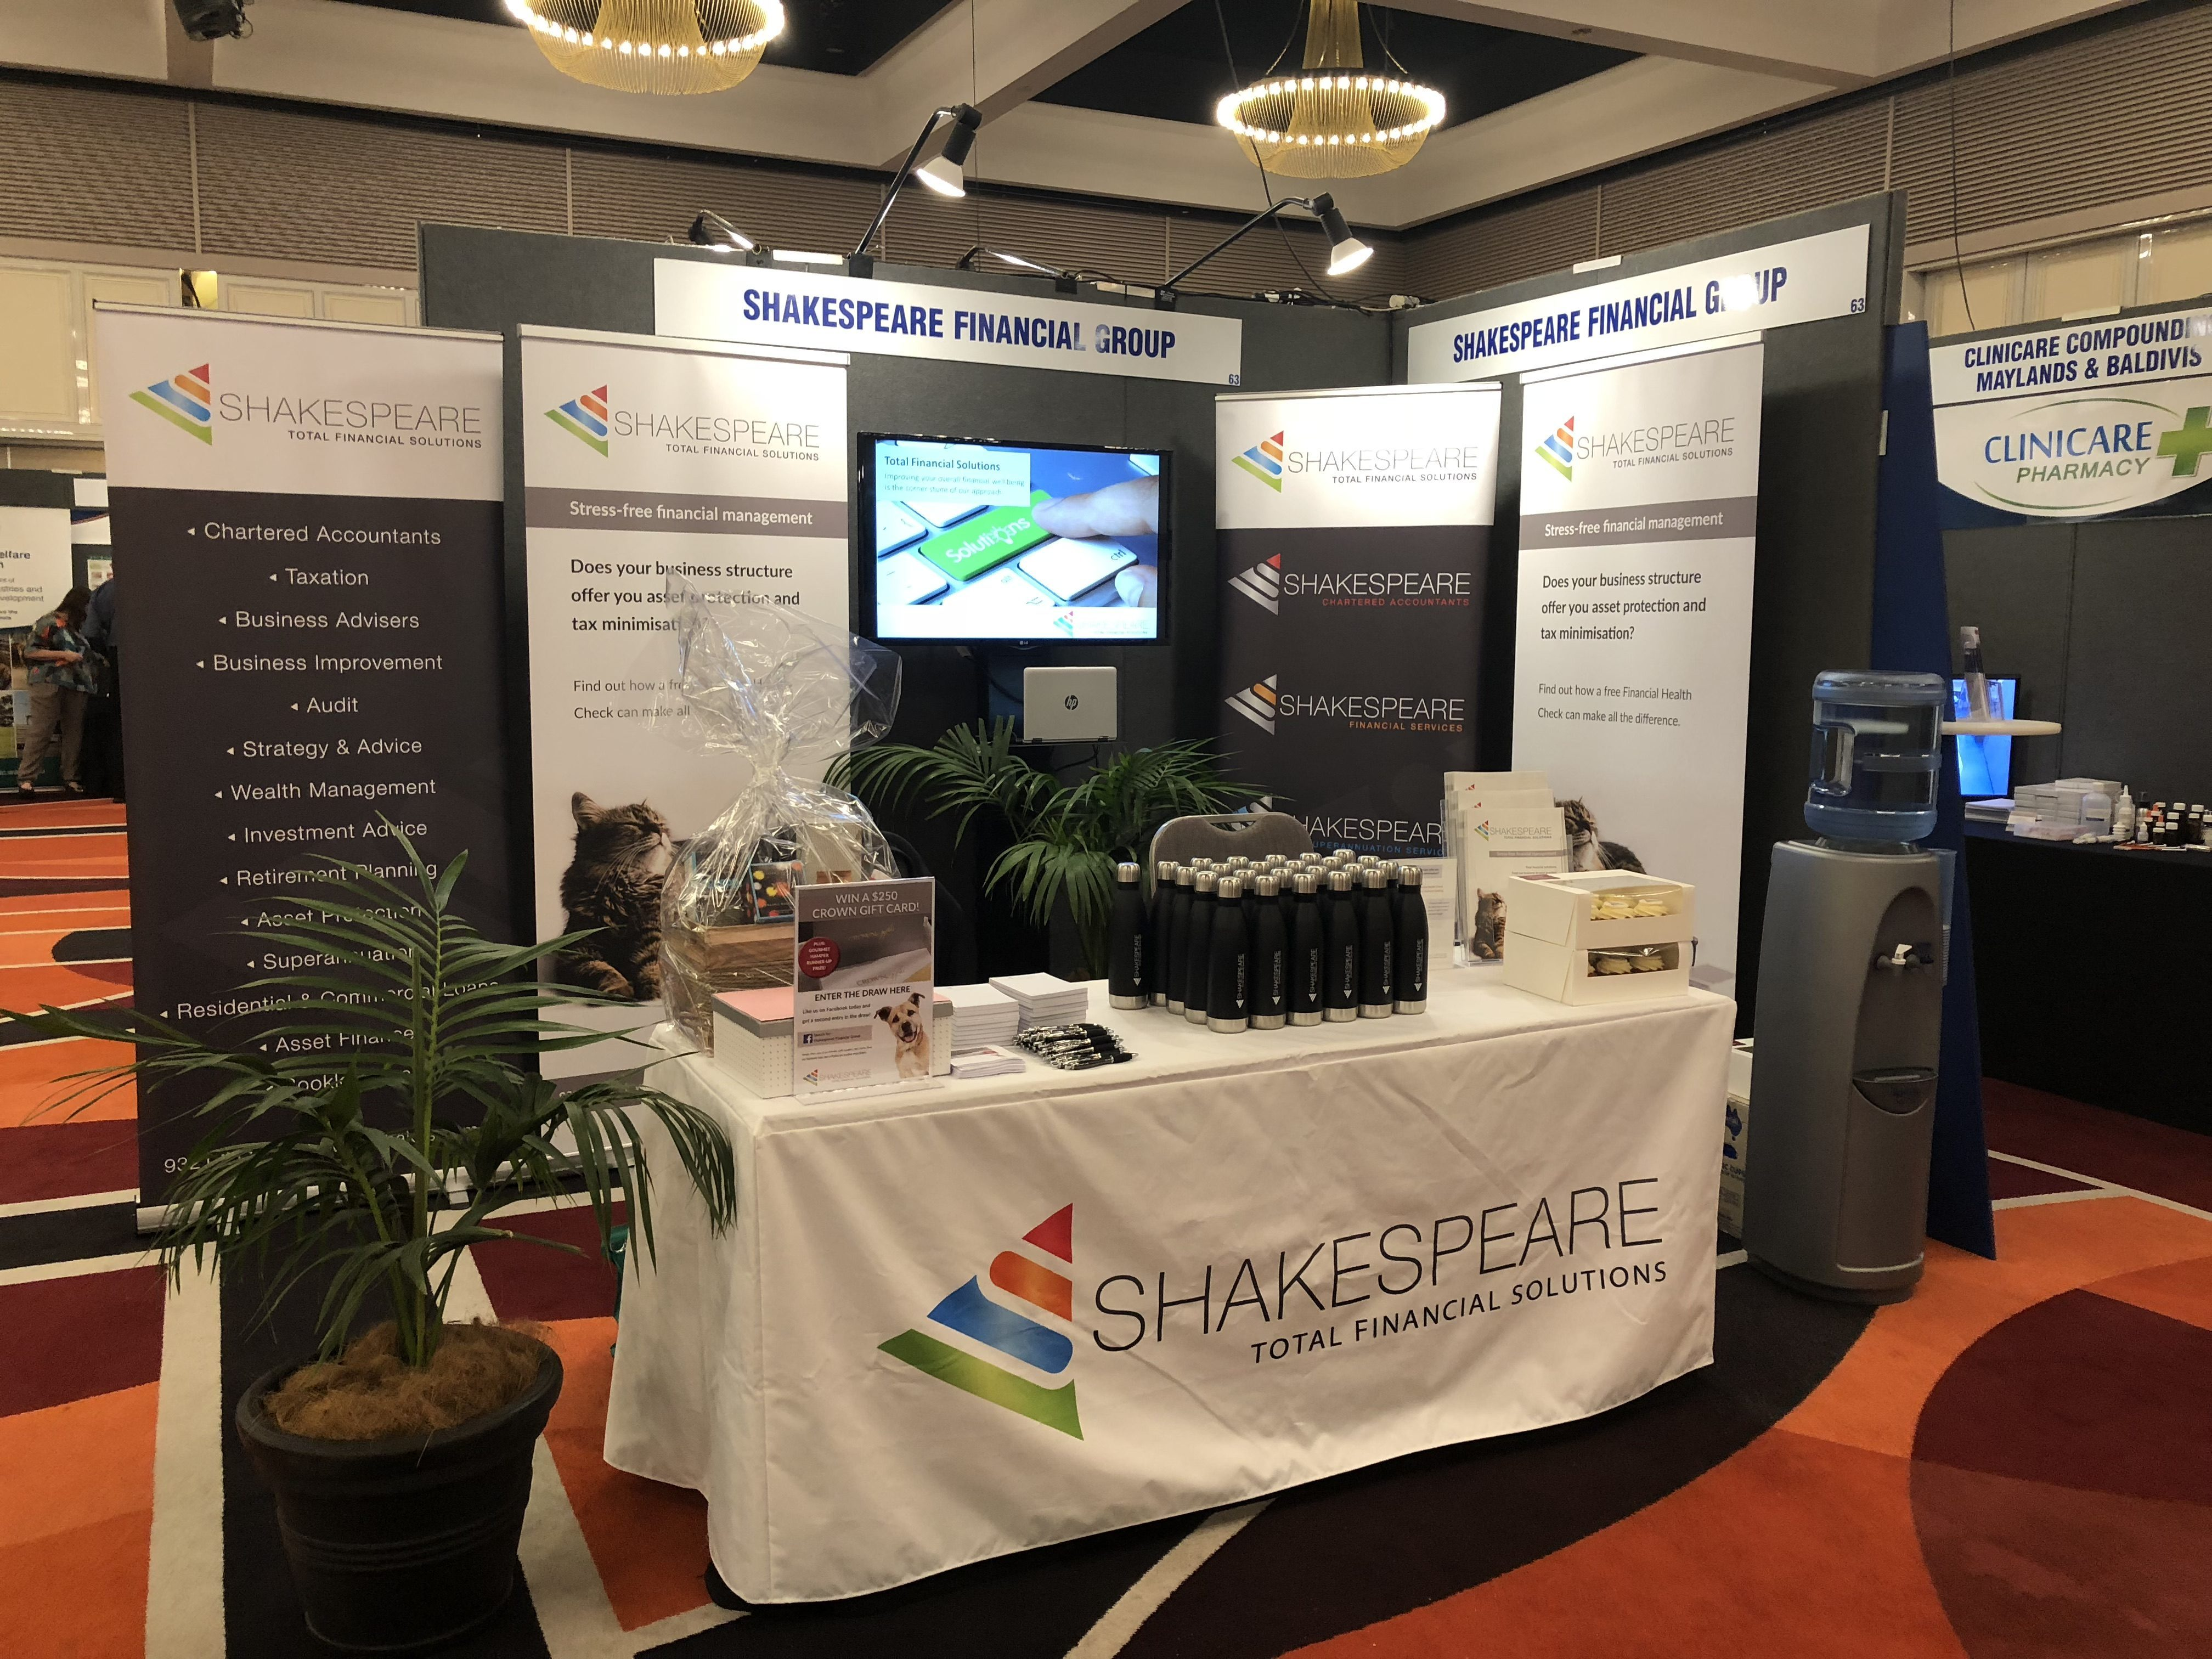 Shakespeare Financial Group exhibition space at Australian Veterinary Association WA Division State Conference 2018